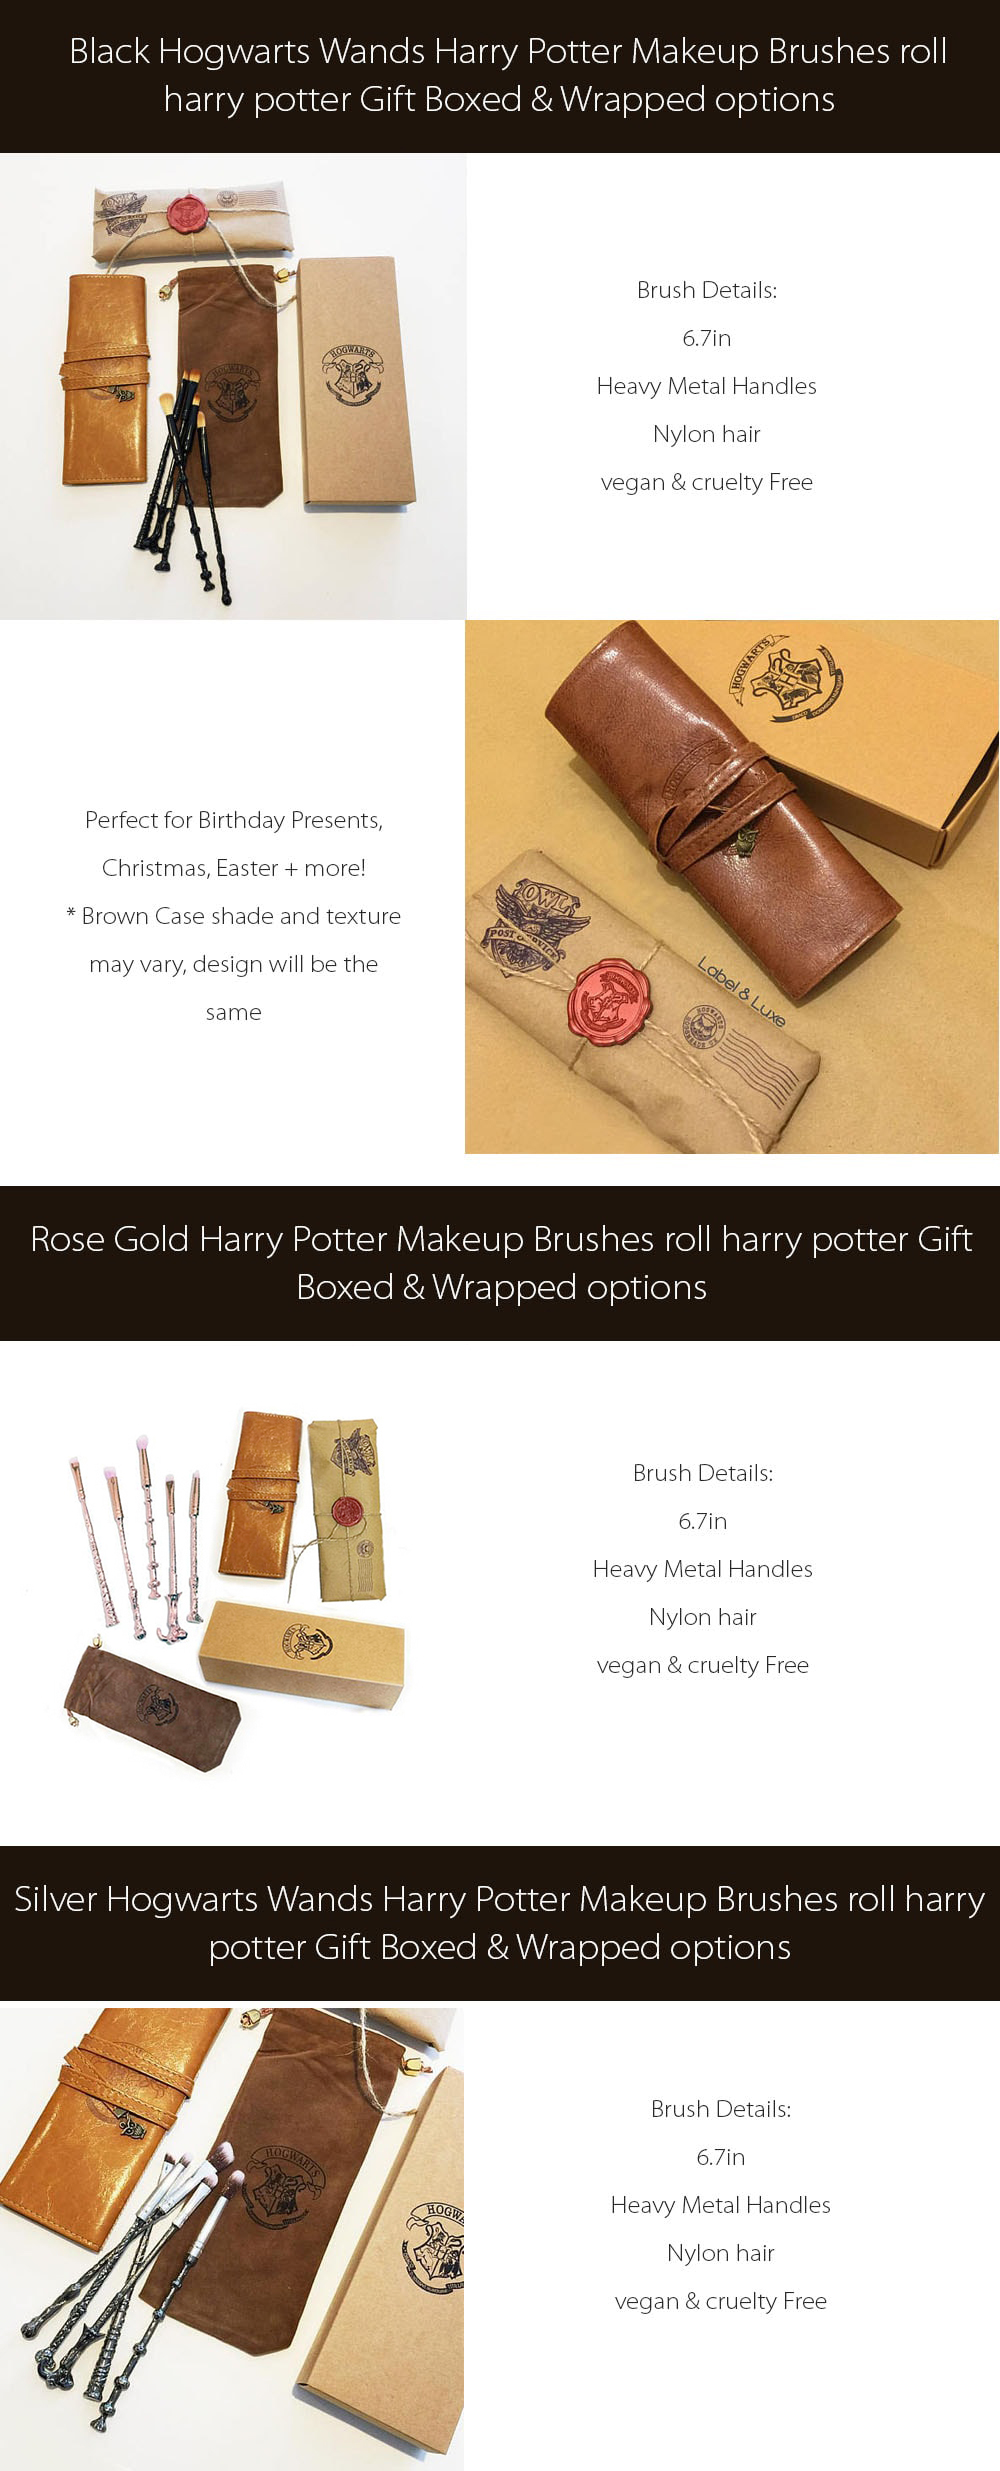 Hogwarts Wands Makeup Brushes Harry Potter Collections